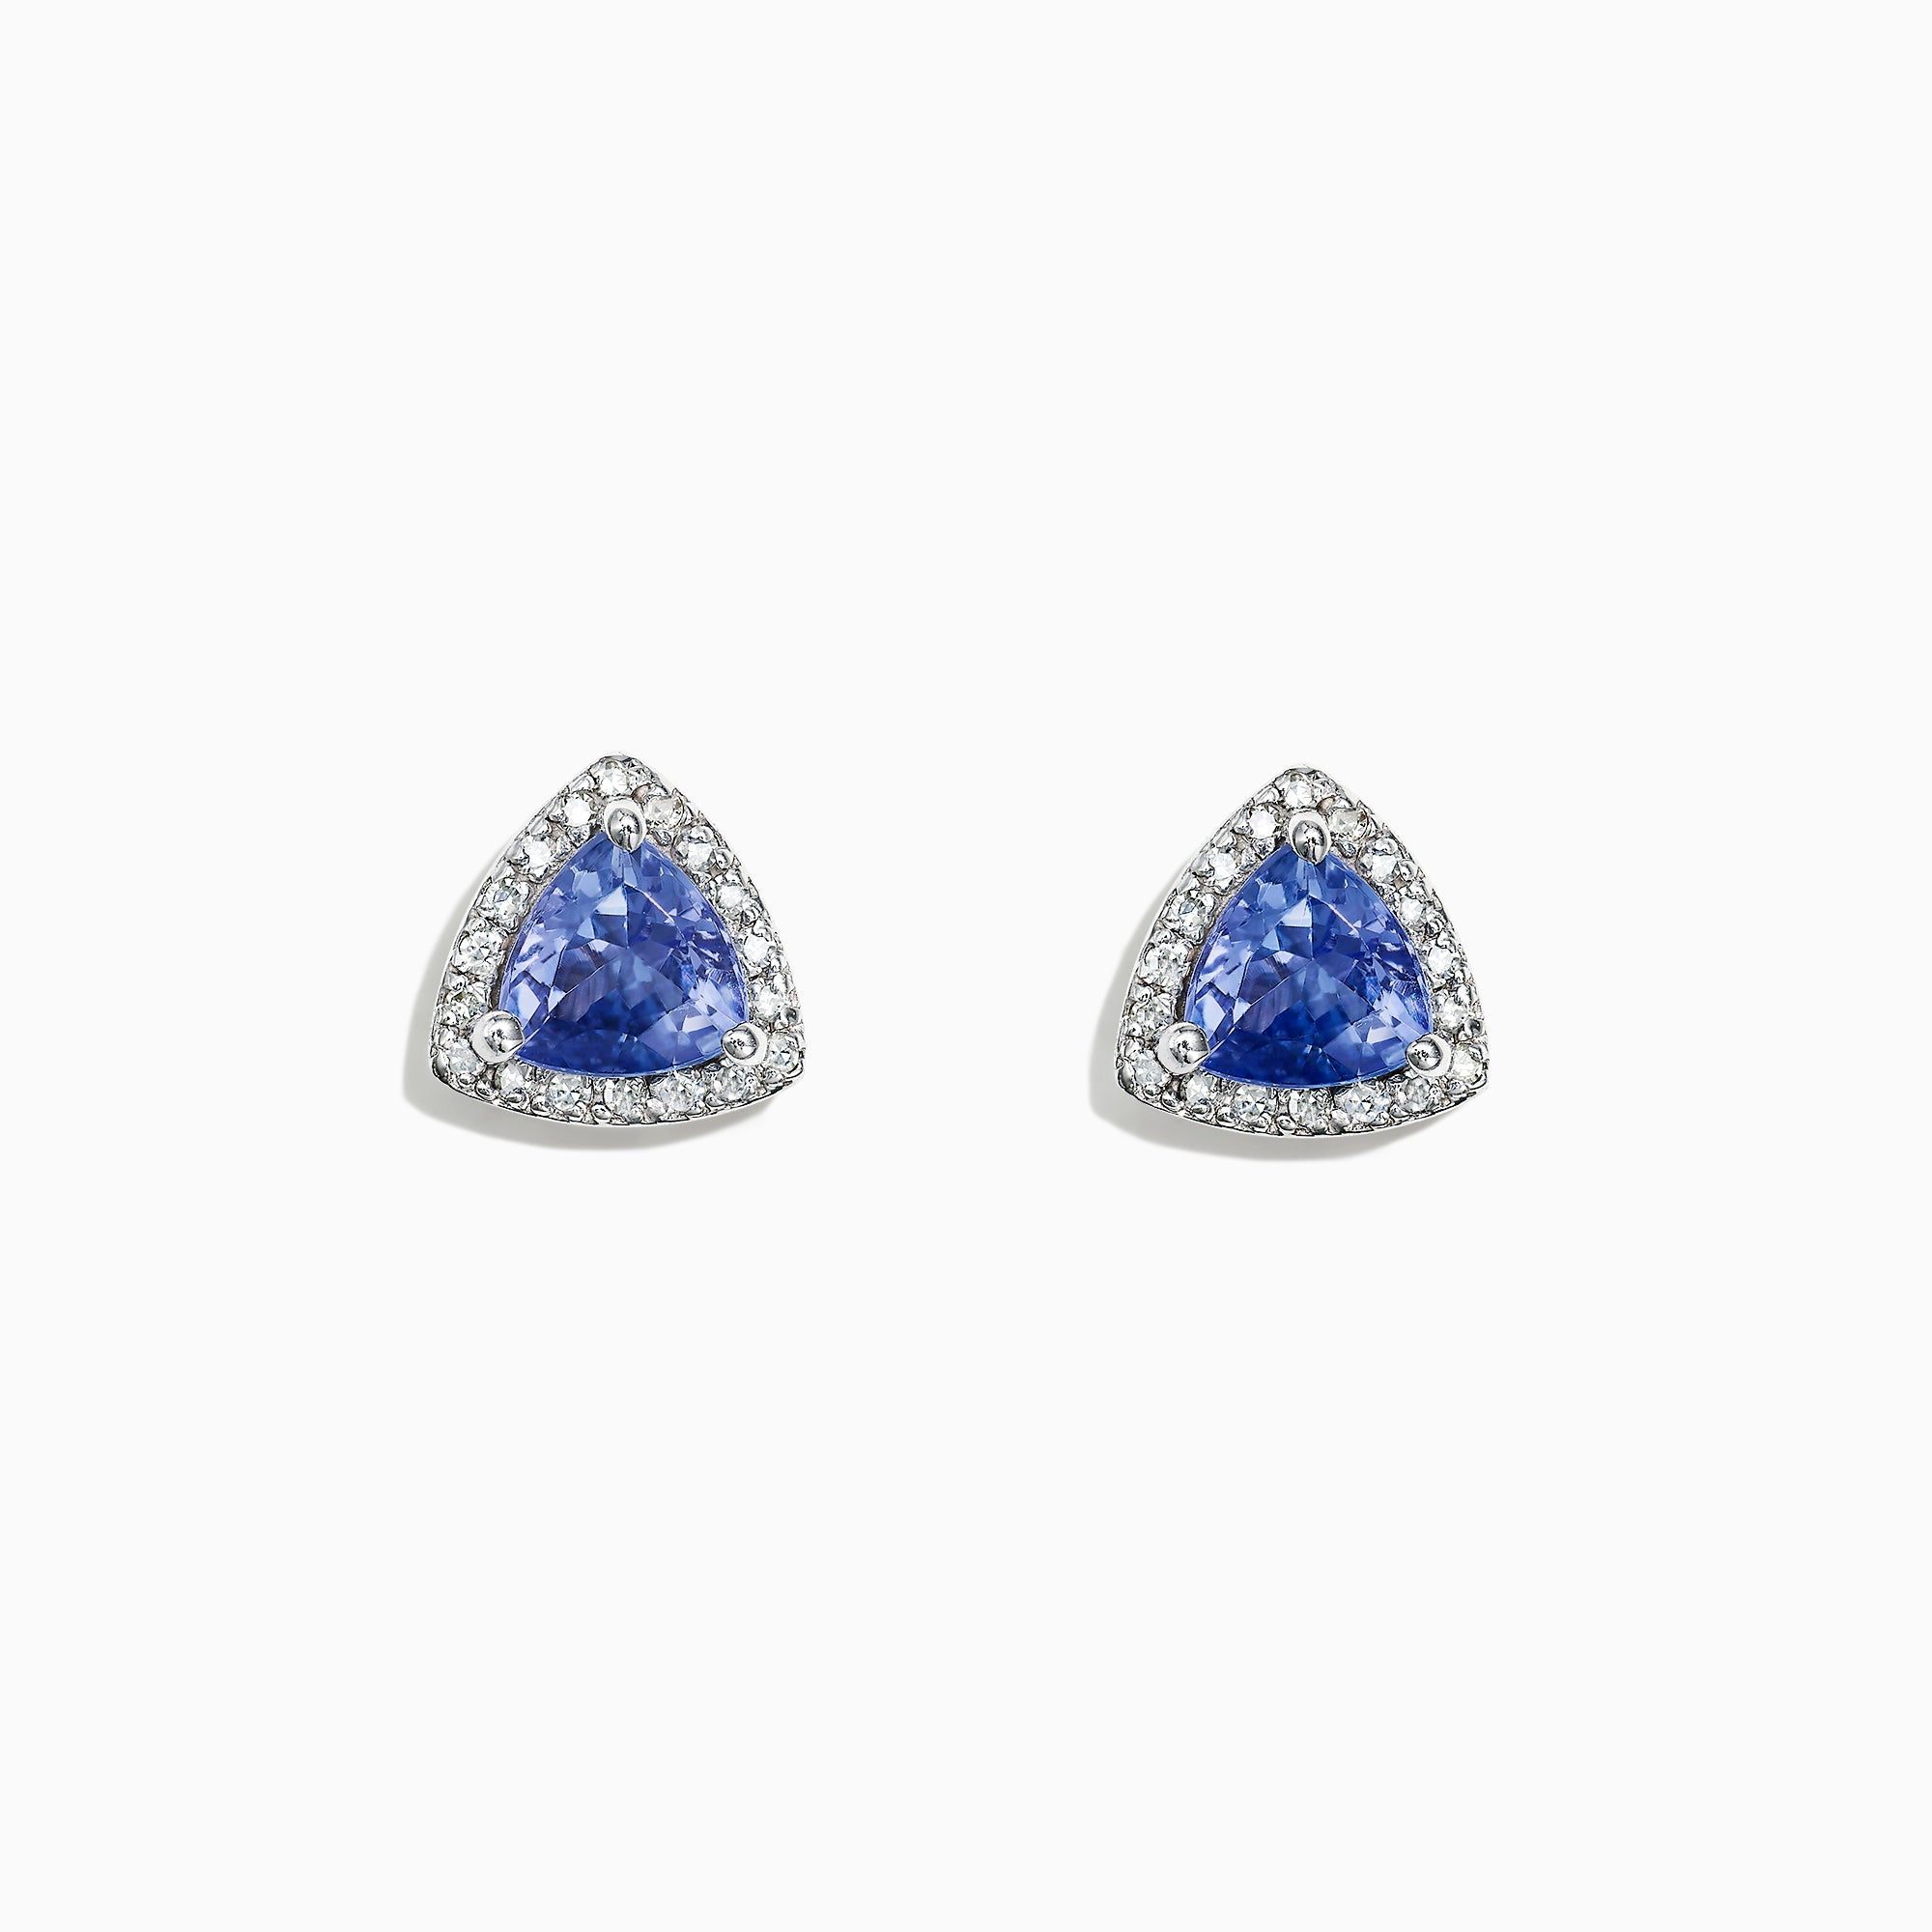 Effy 14K White Gold Tanzanite and Diamond Stud Earrings, 1.19 TCW